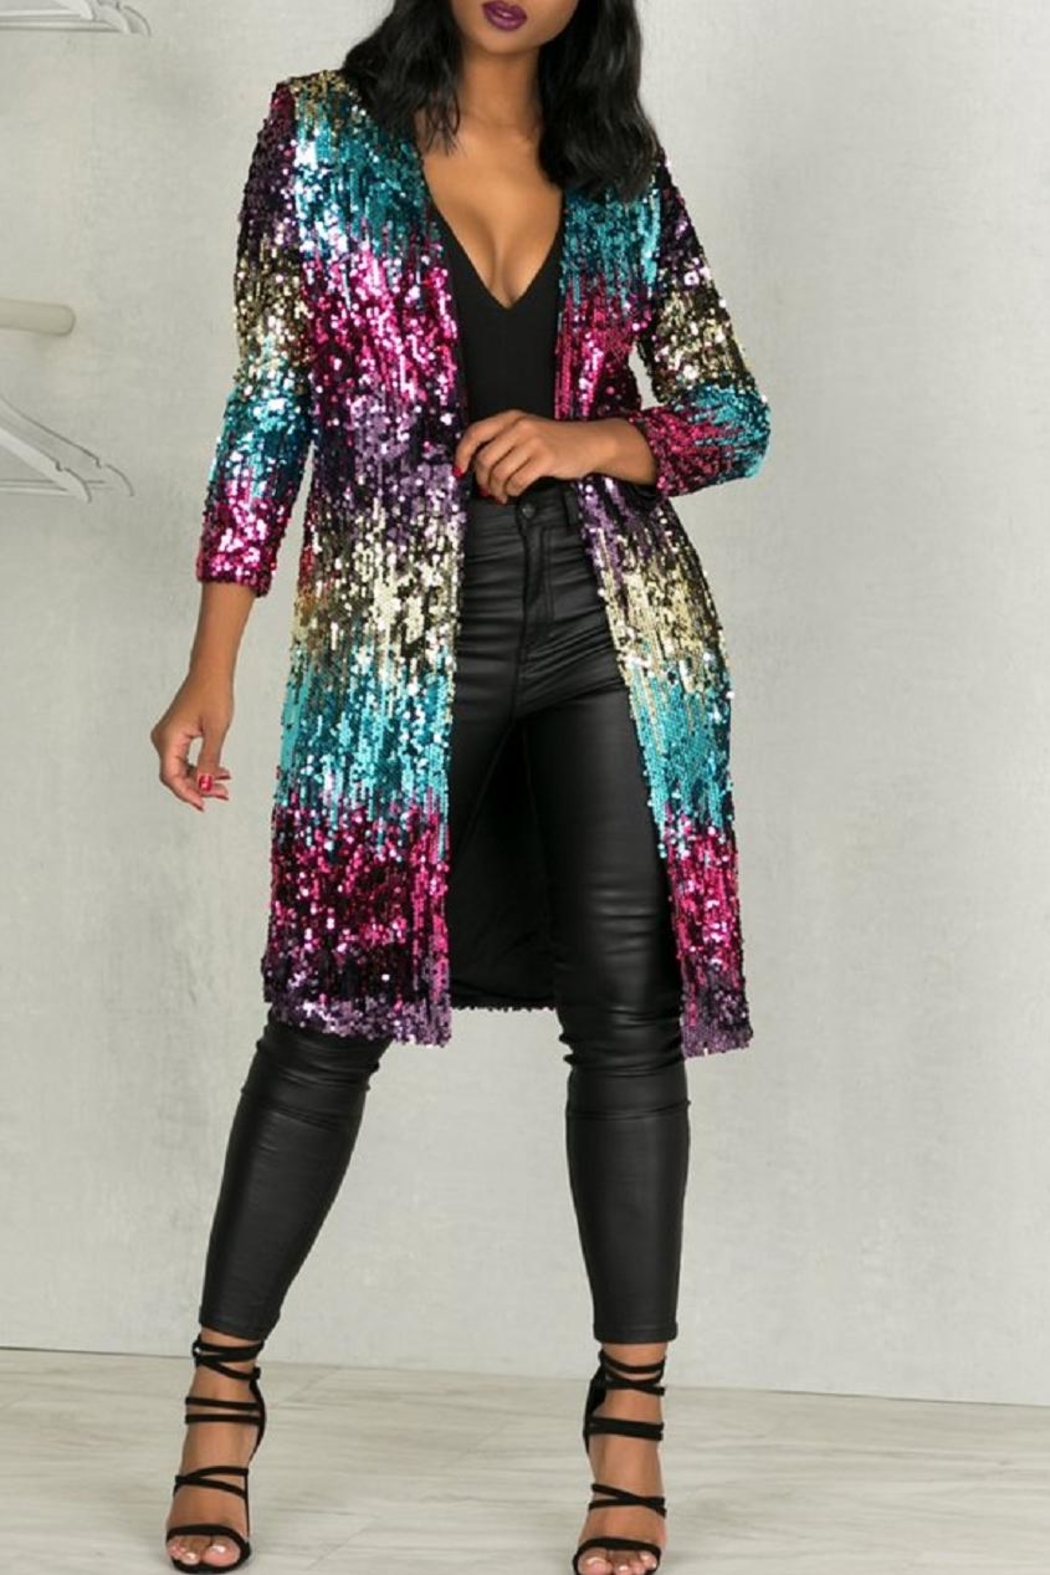 Making Sequin Cardigan Your Statement Piece